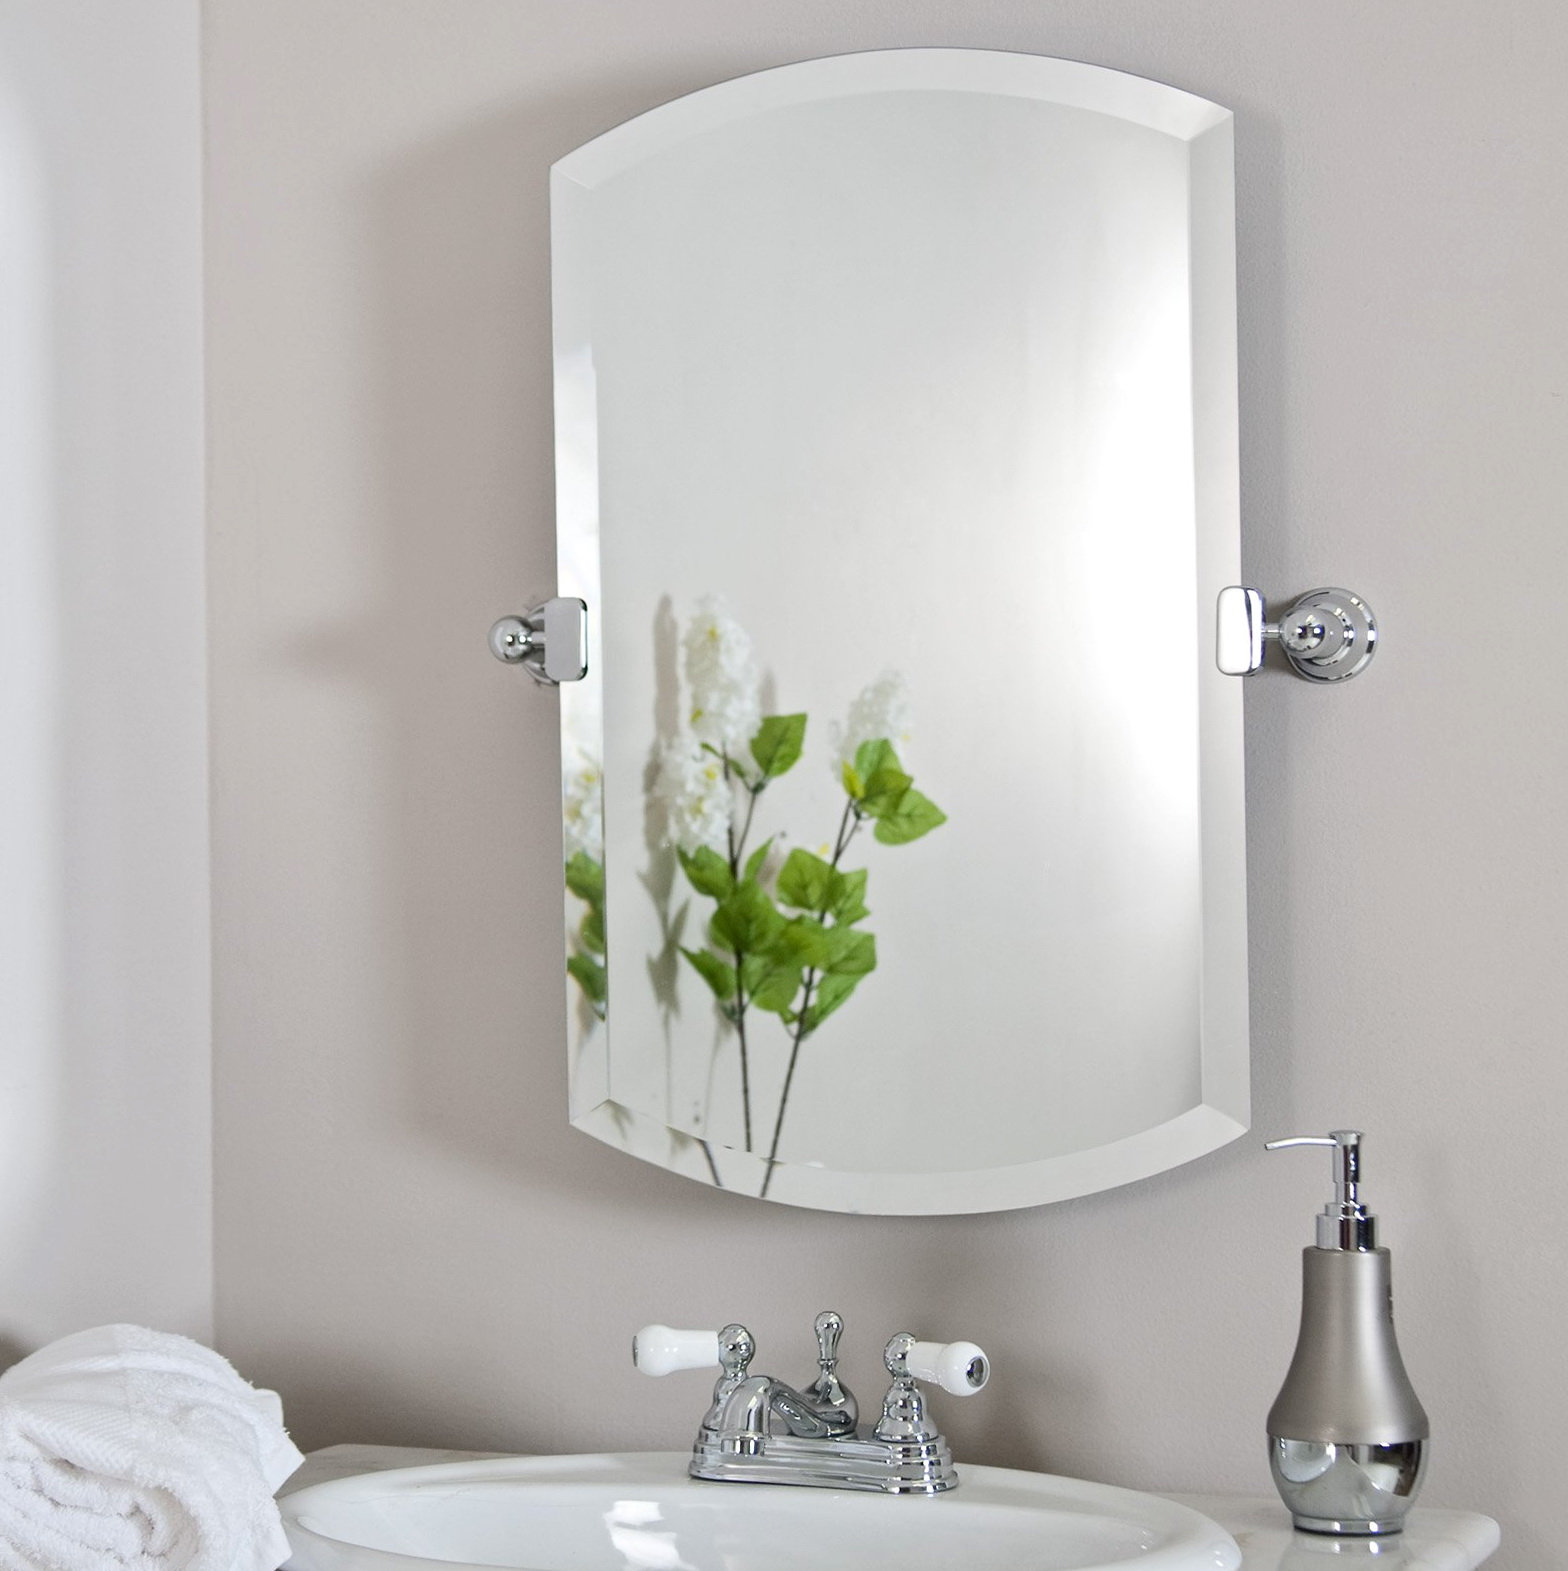 Unique Bathroom Mirrors For Sale  Home Design Ideas